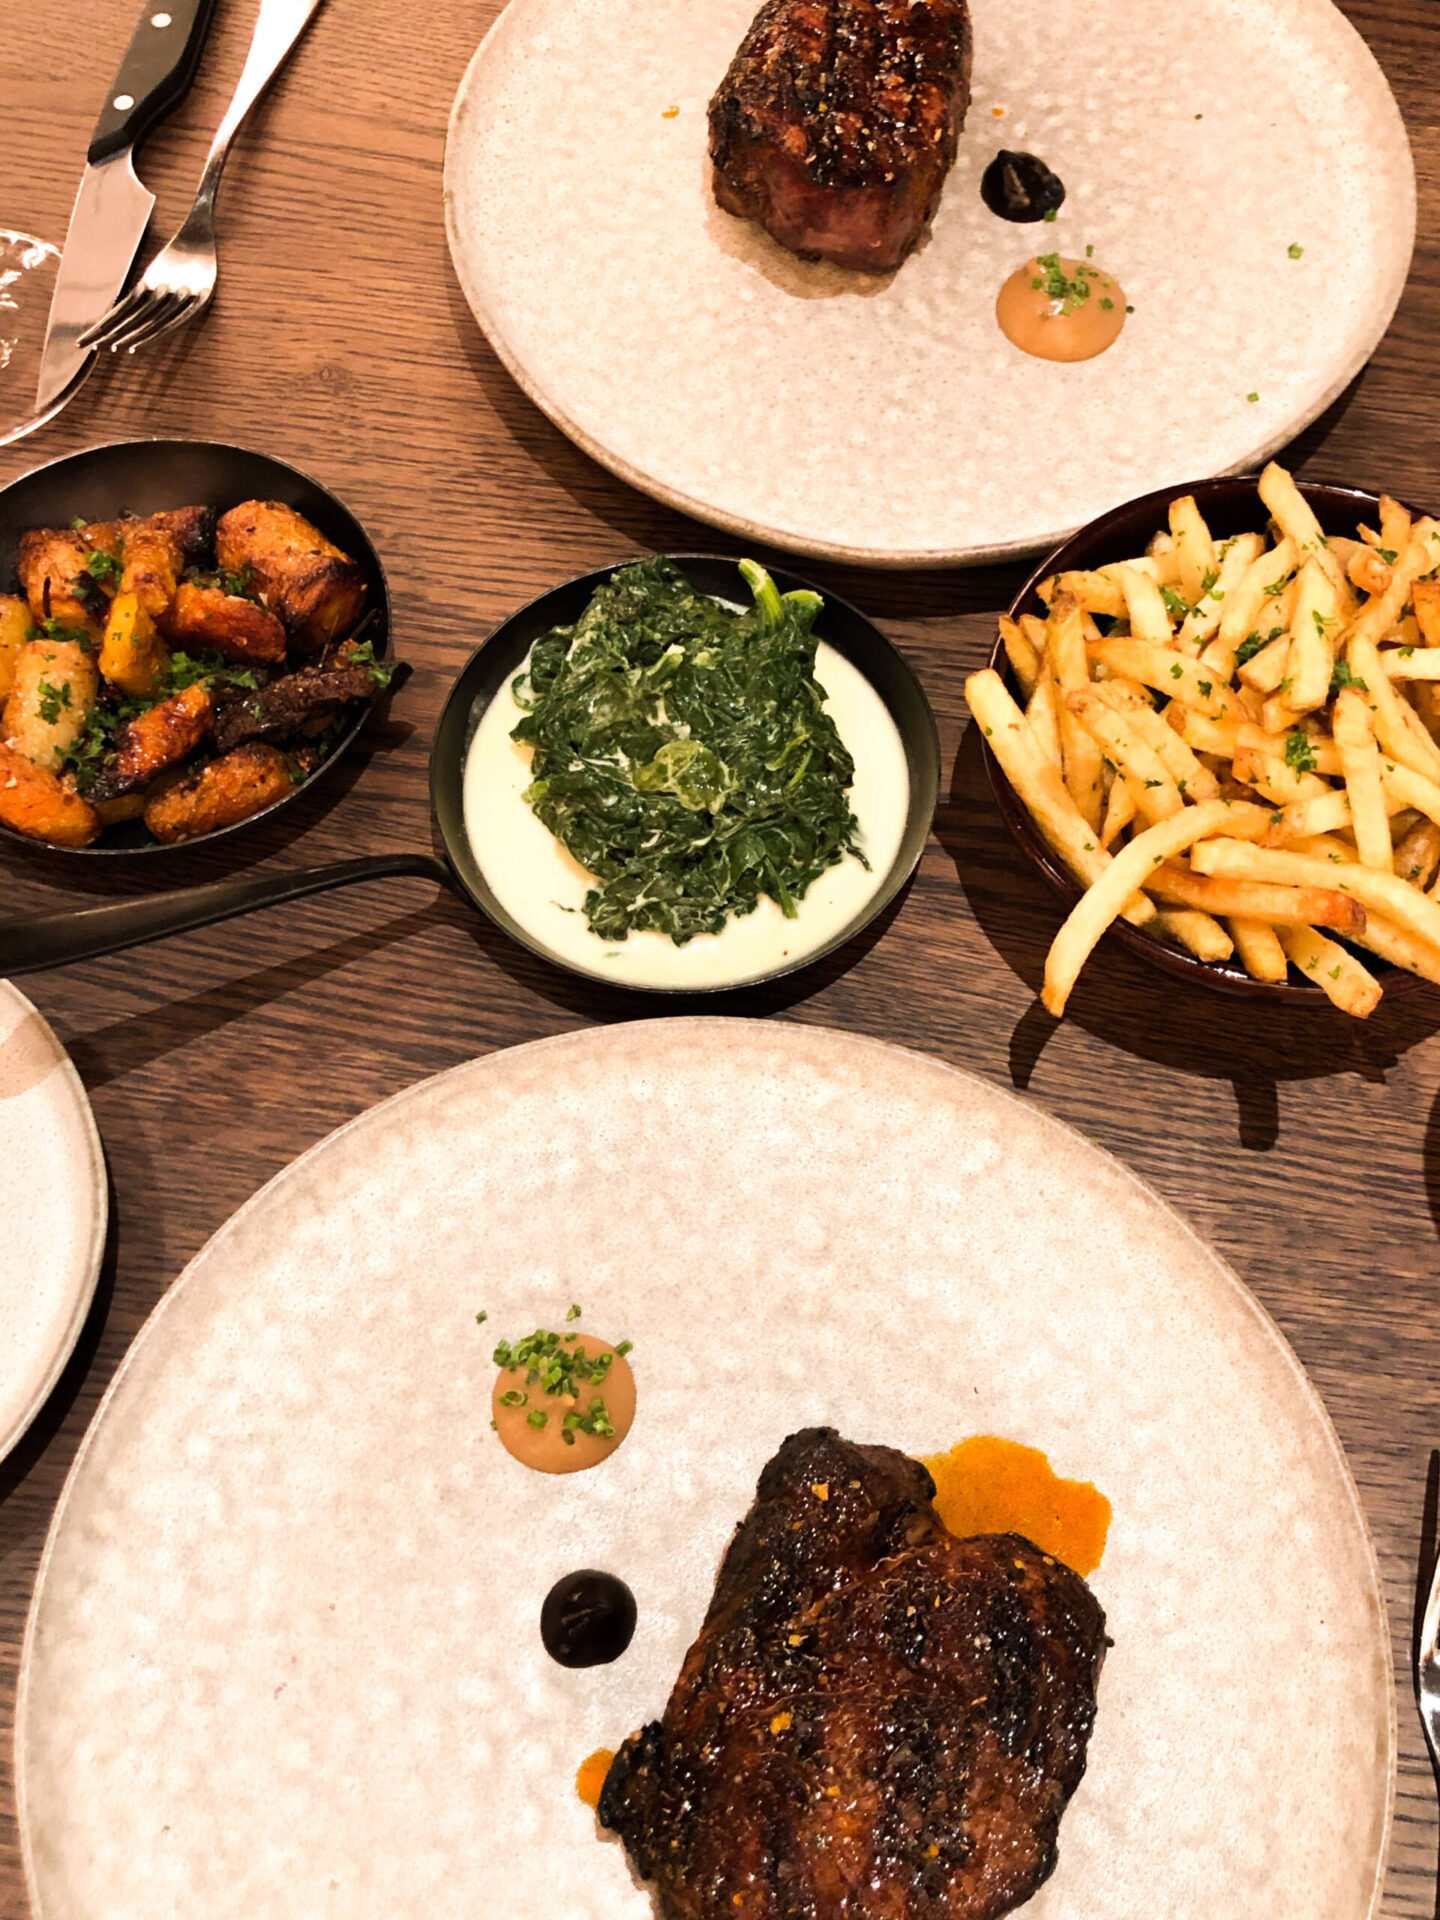 Pulperia steak chips and creamed spinach